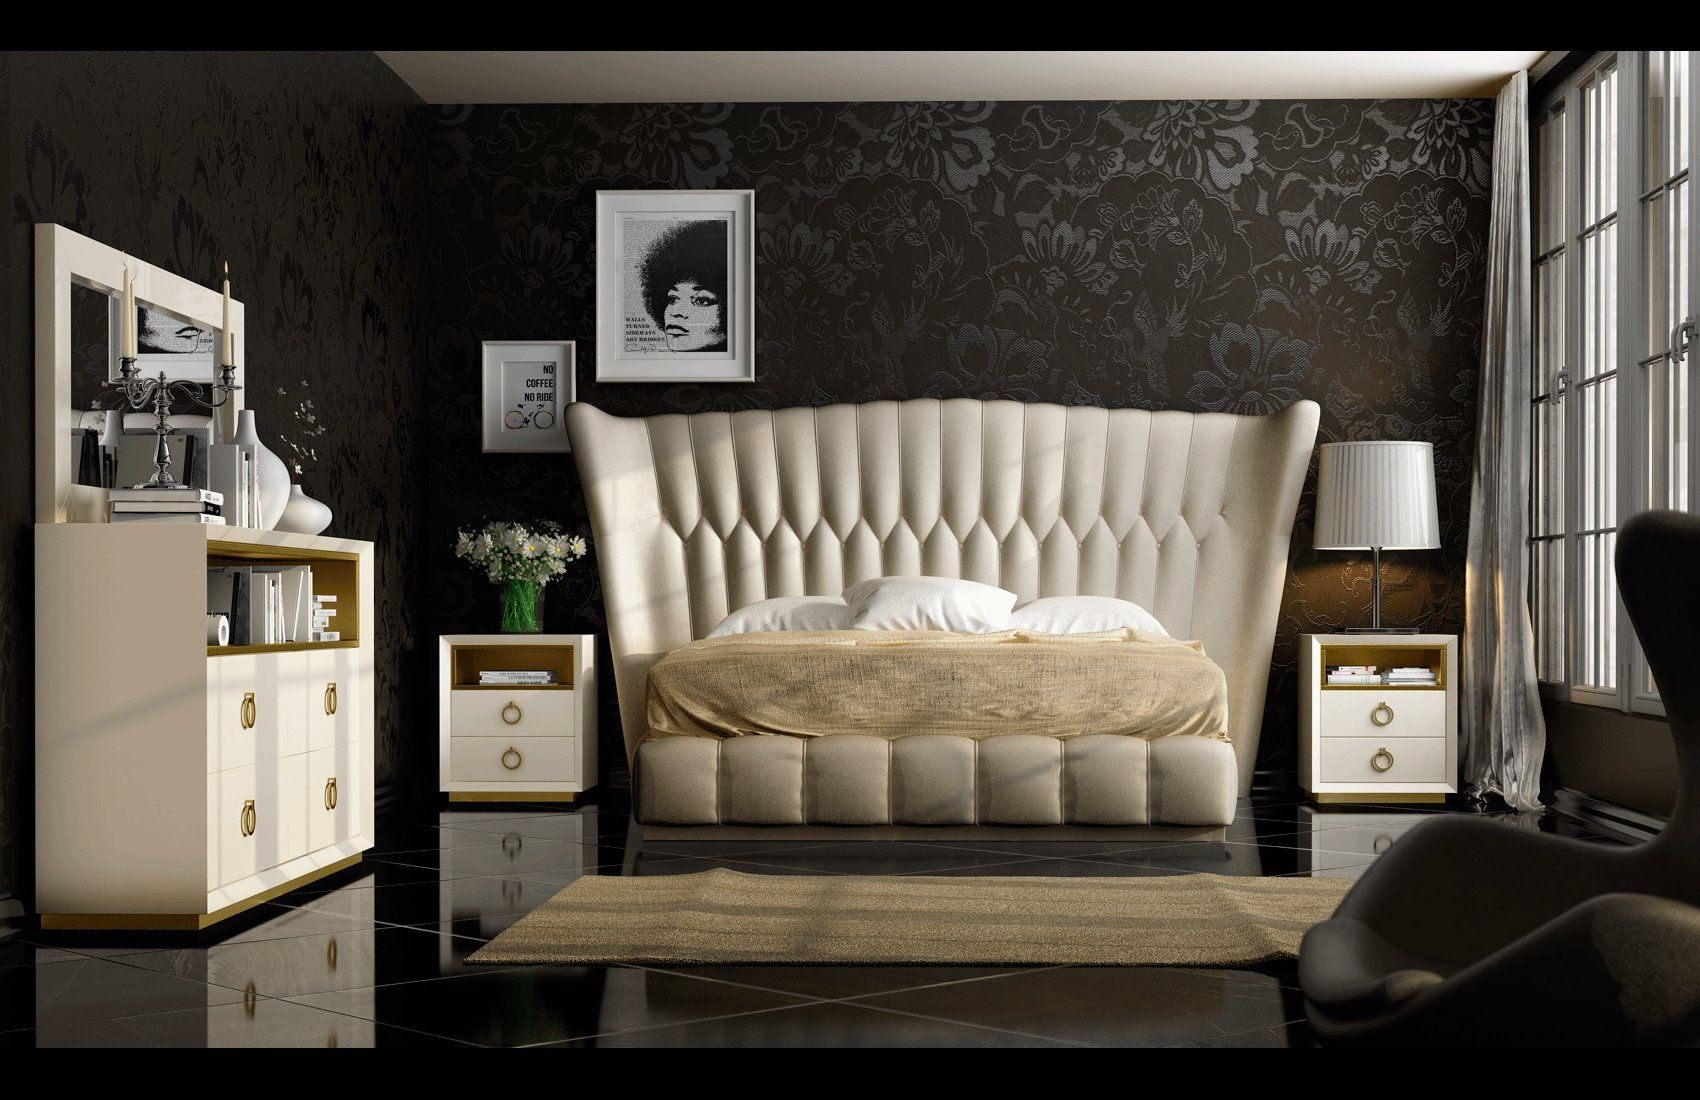 Made in Europe bedroom set. Show your love for superior design